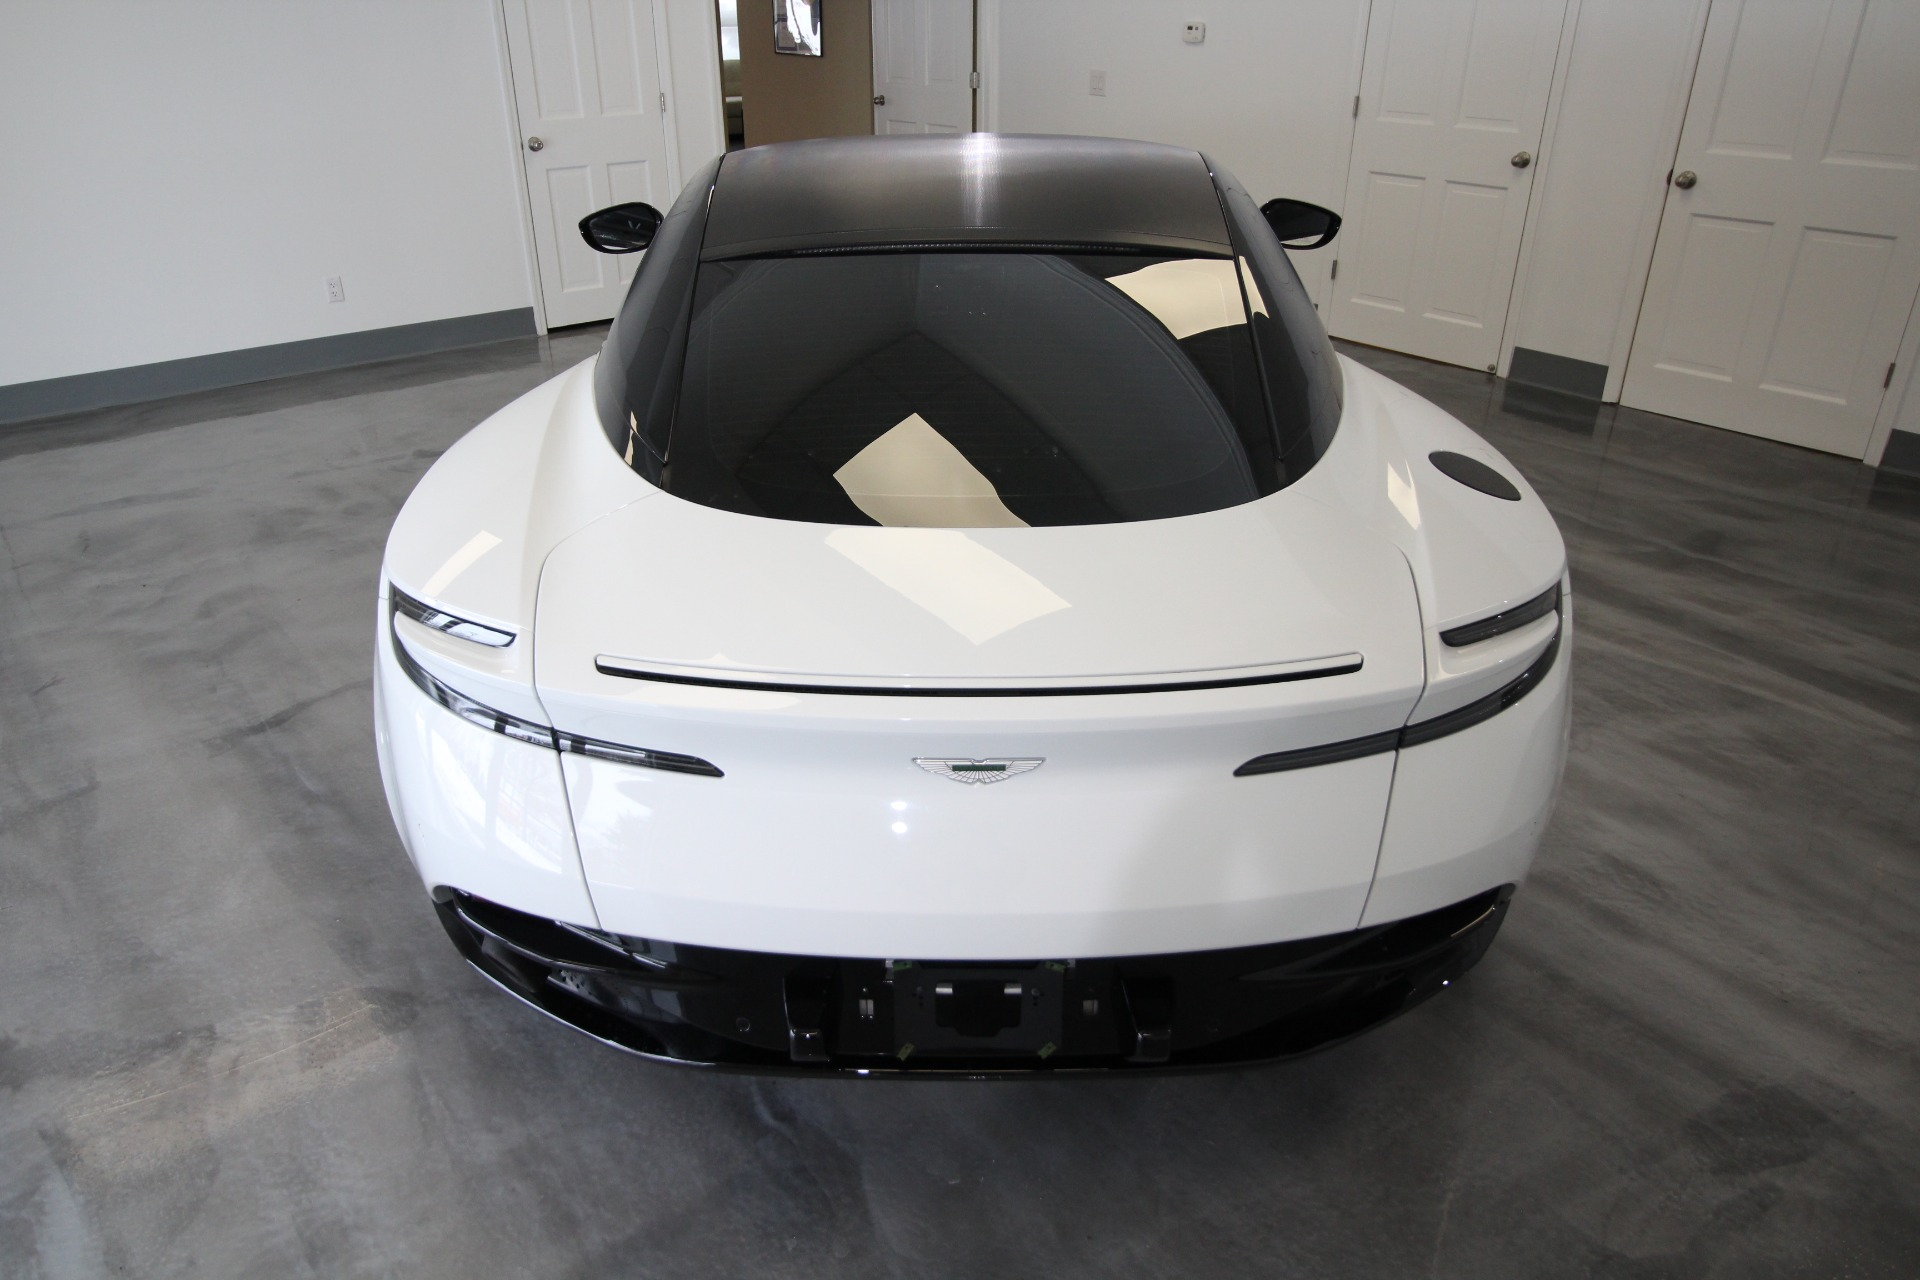 Used 2018 Aston Martin DB11 V12 SUPER HOT HUGE MSRP STICKER 262969$ LIKE NEW LOW MILES 1 OWNER | Albany, NY